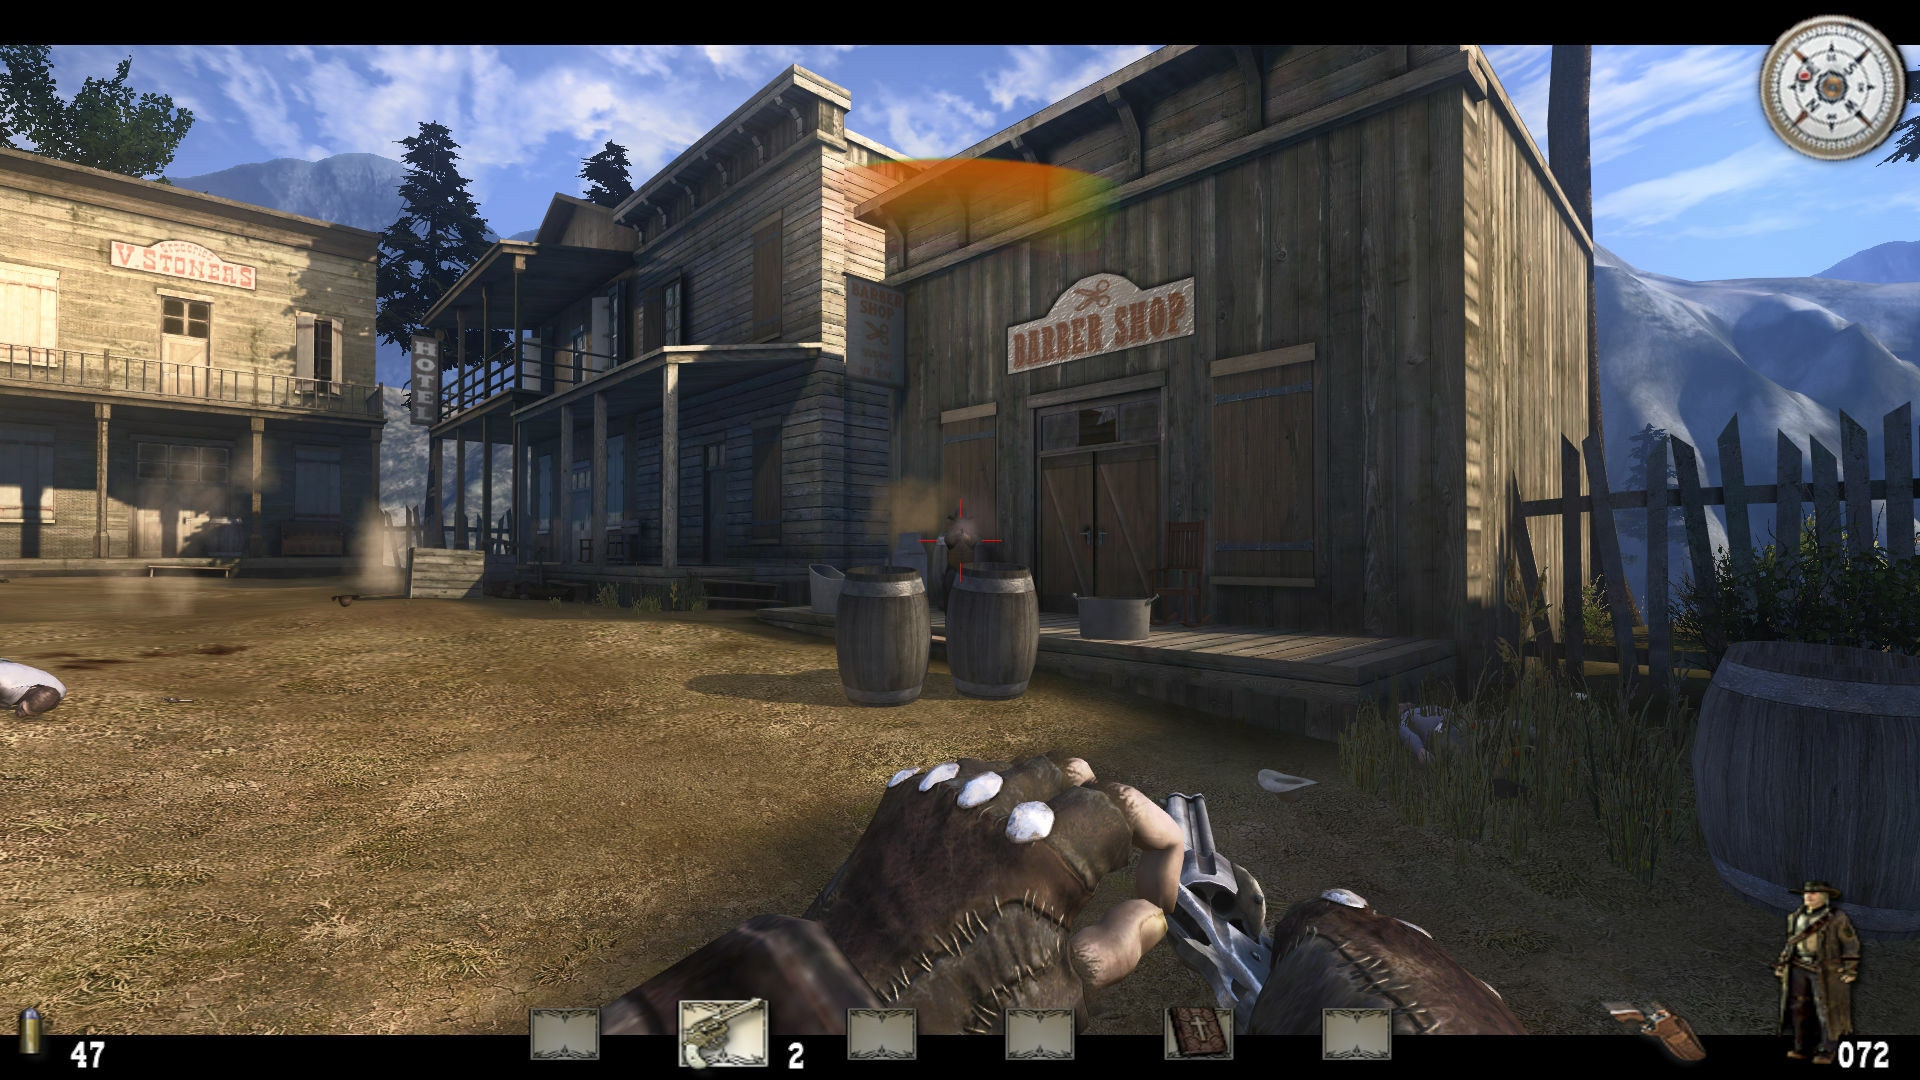 Call of Juarez screenshot 3